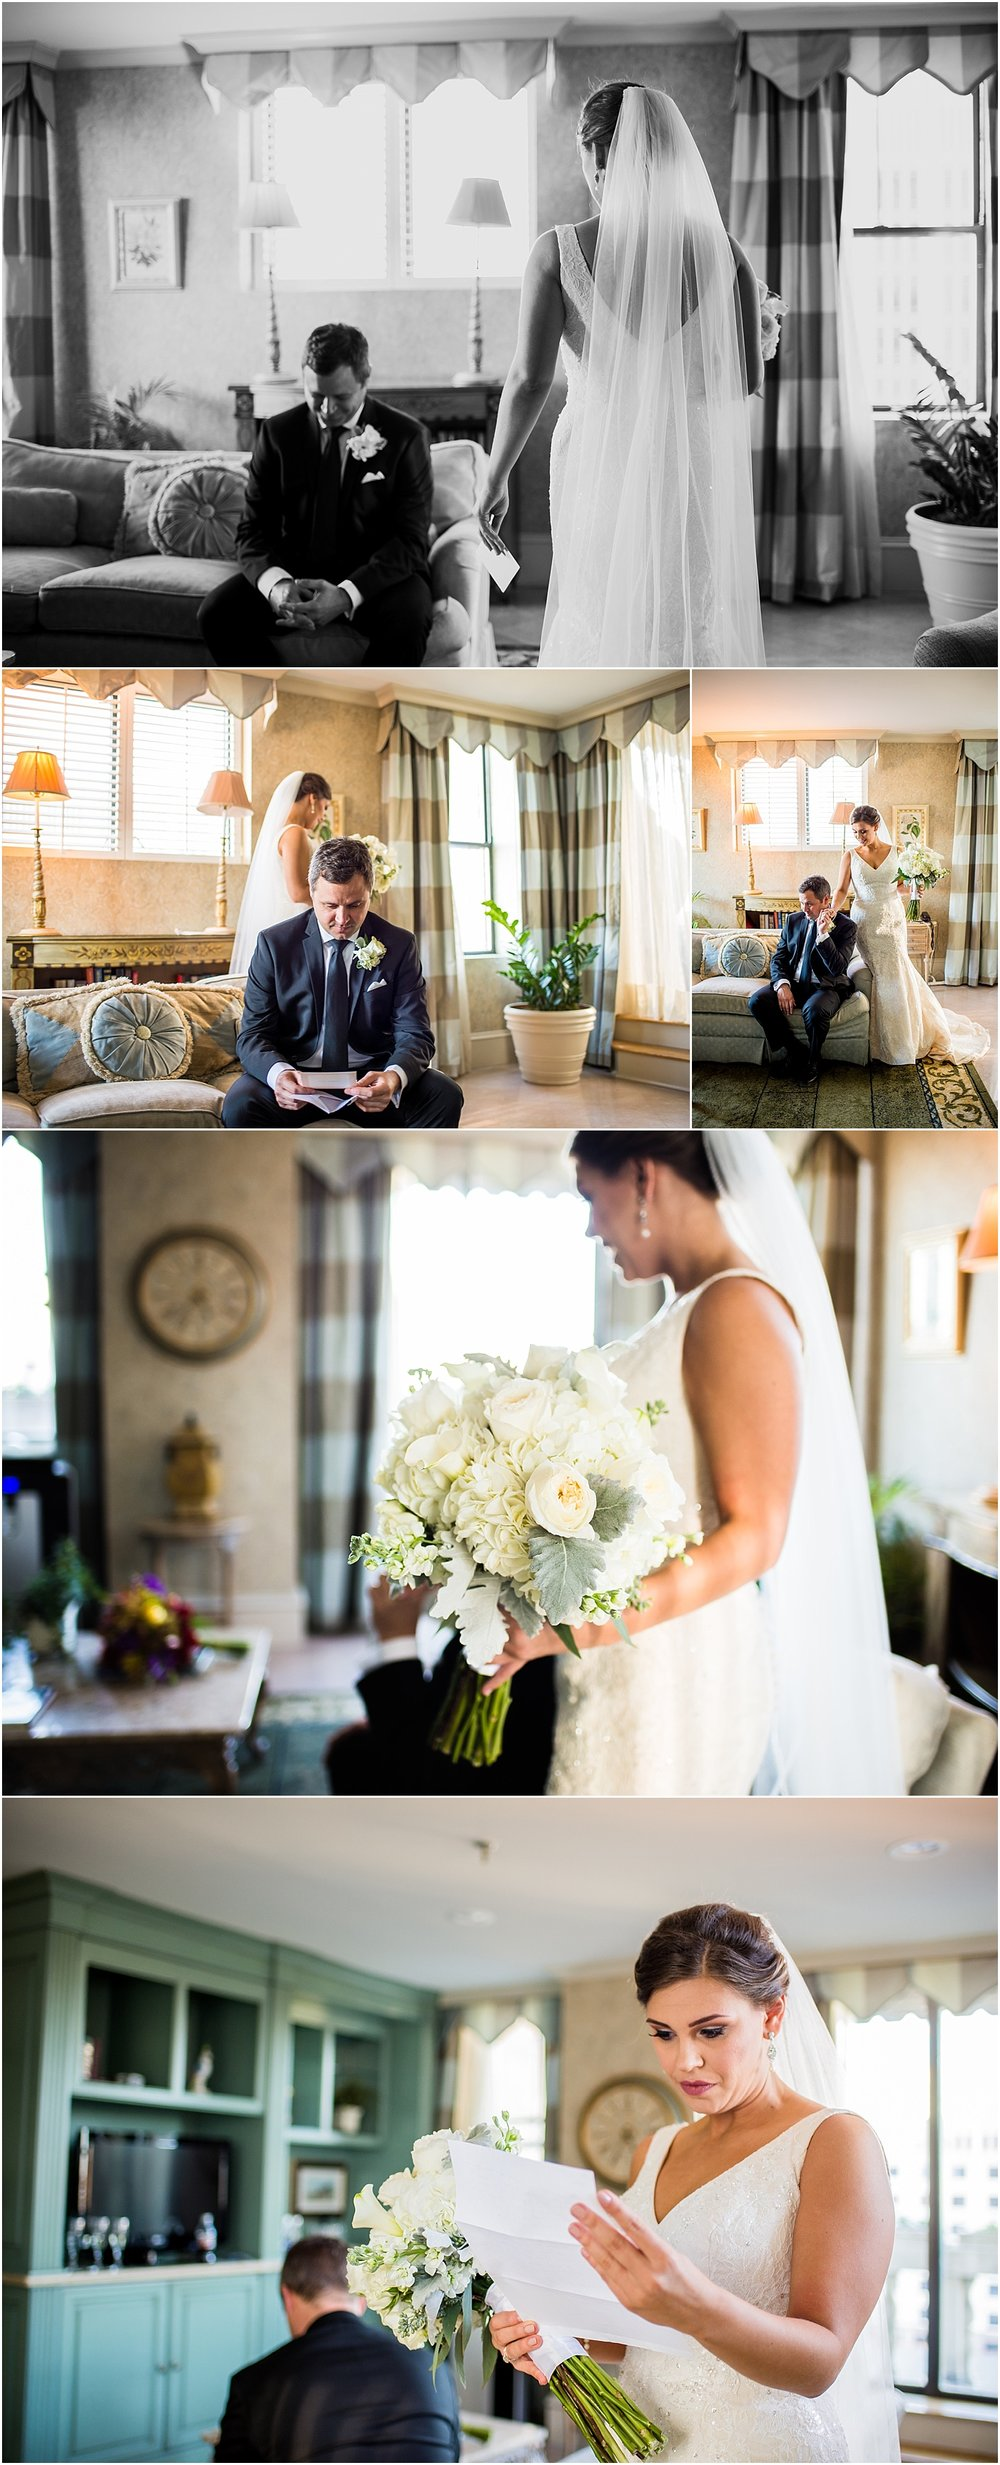 Bride_Groom_First_Touch_Dunhill_Hotel_Charlotte_North_Carolina_Destination_Wedding